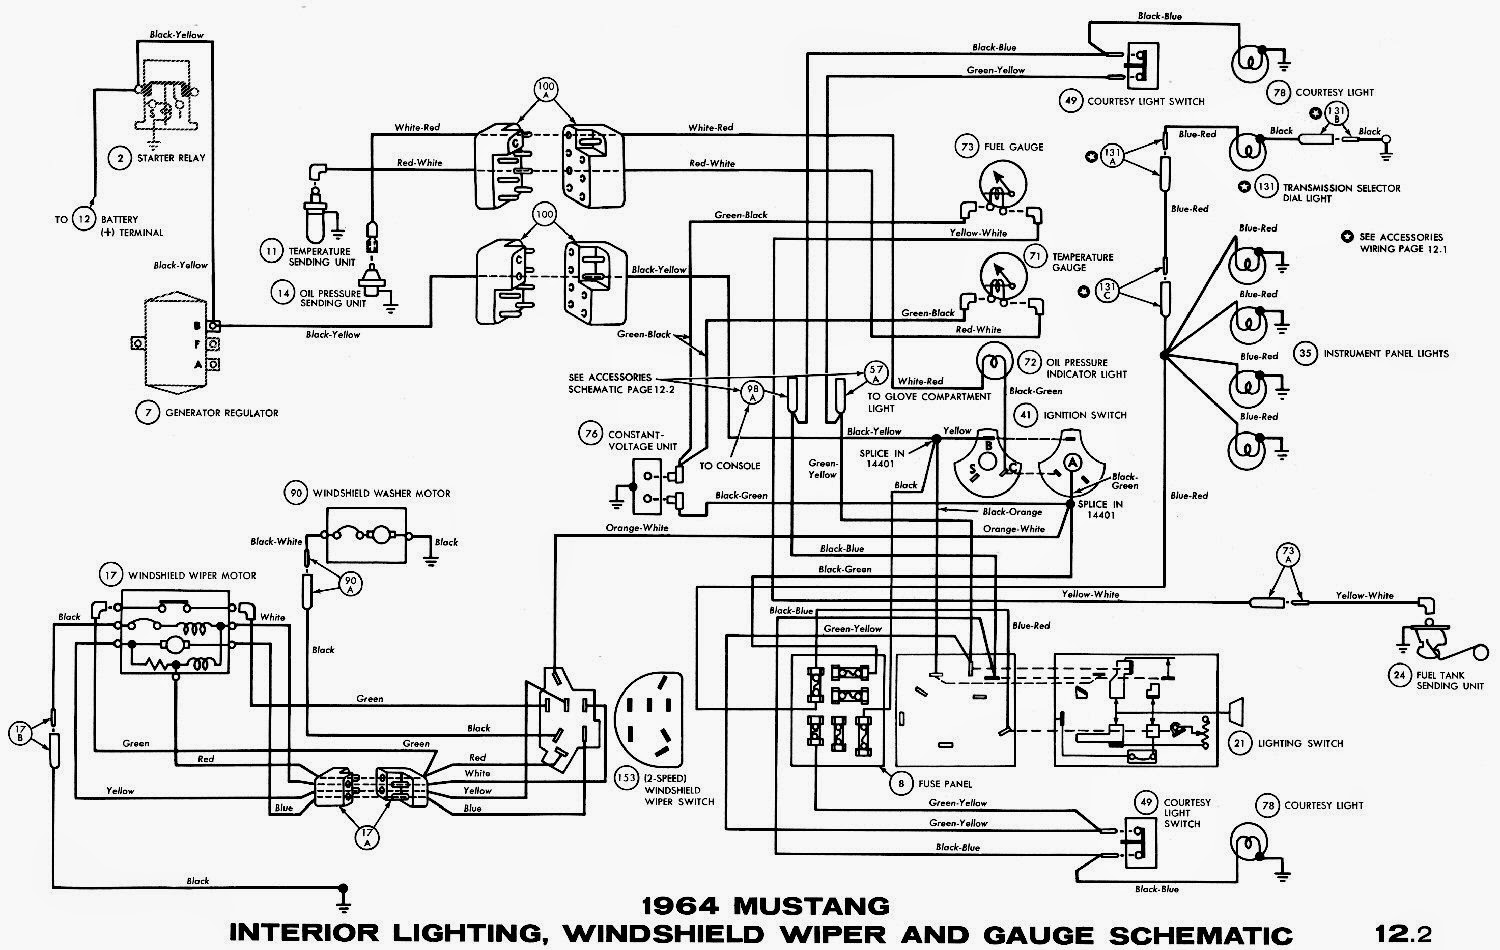 DIAGRAM] 67 Mustang Interior Wiring Diagram Schematic FULL Version HD  Quality Diagram Schematic - VPTL.ARESTINTORI.ITArestintori.it